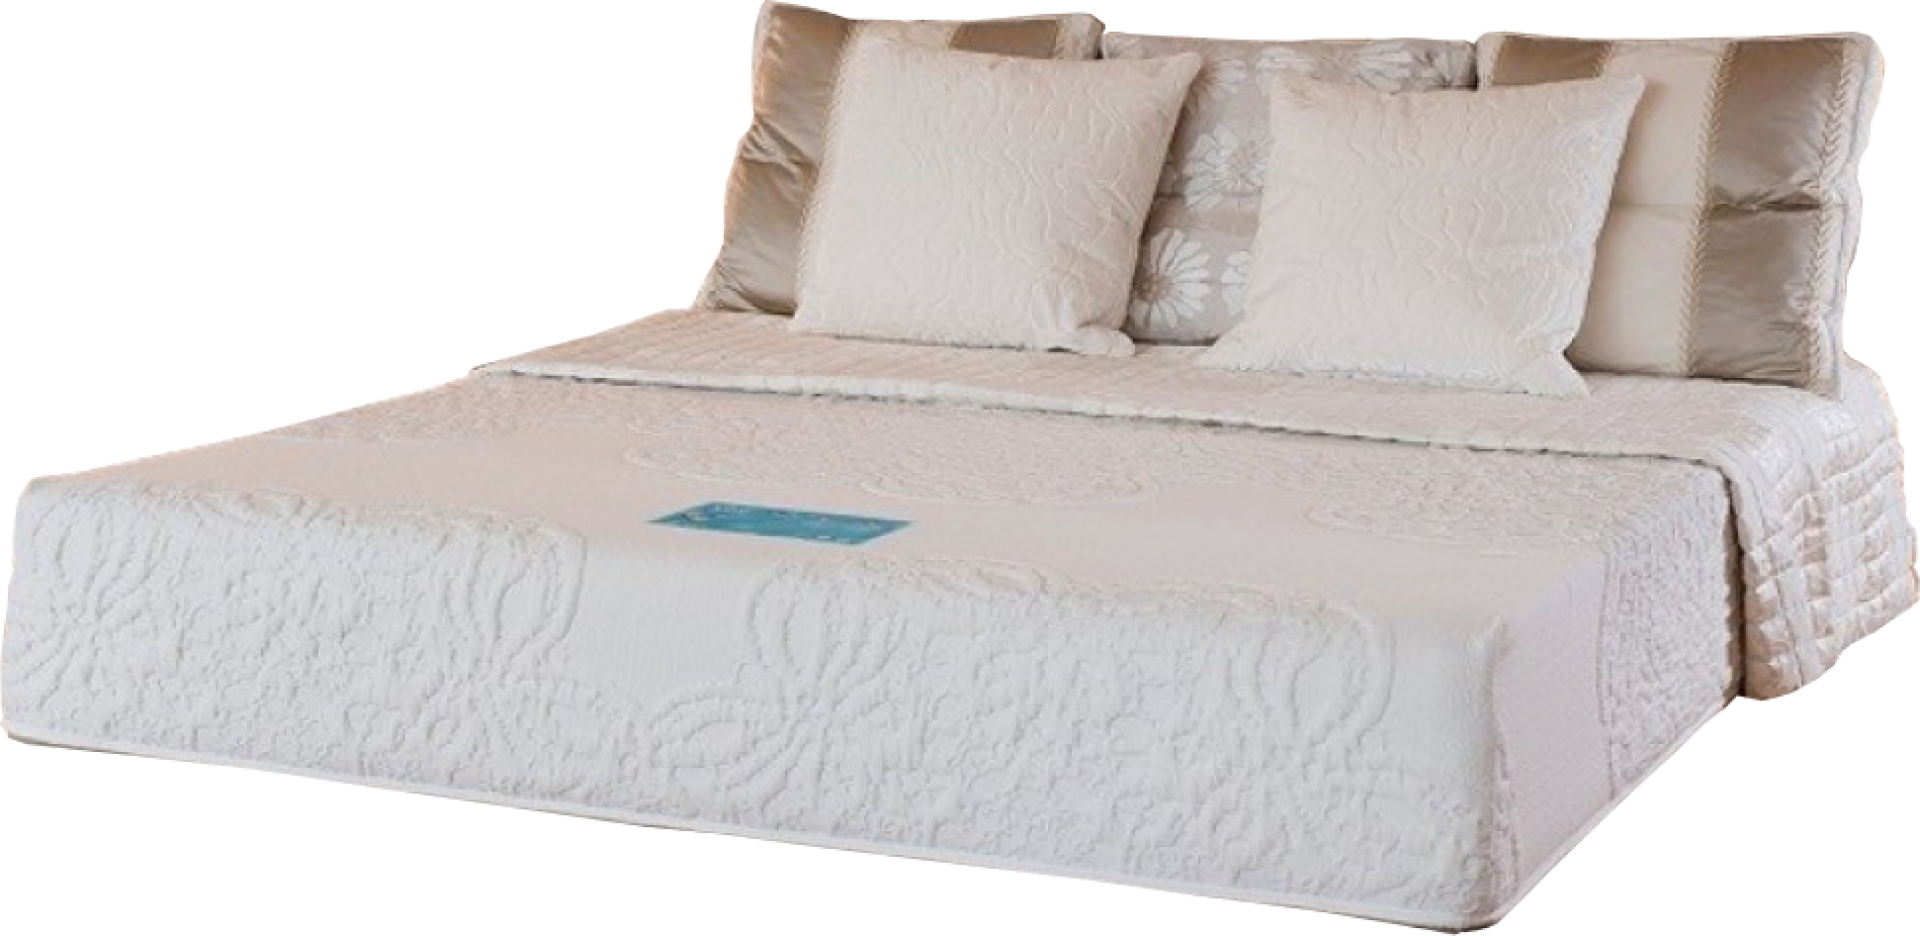 Kaymed Relax Superior Mattress